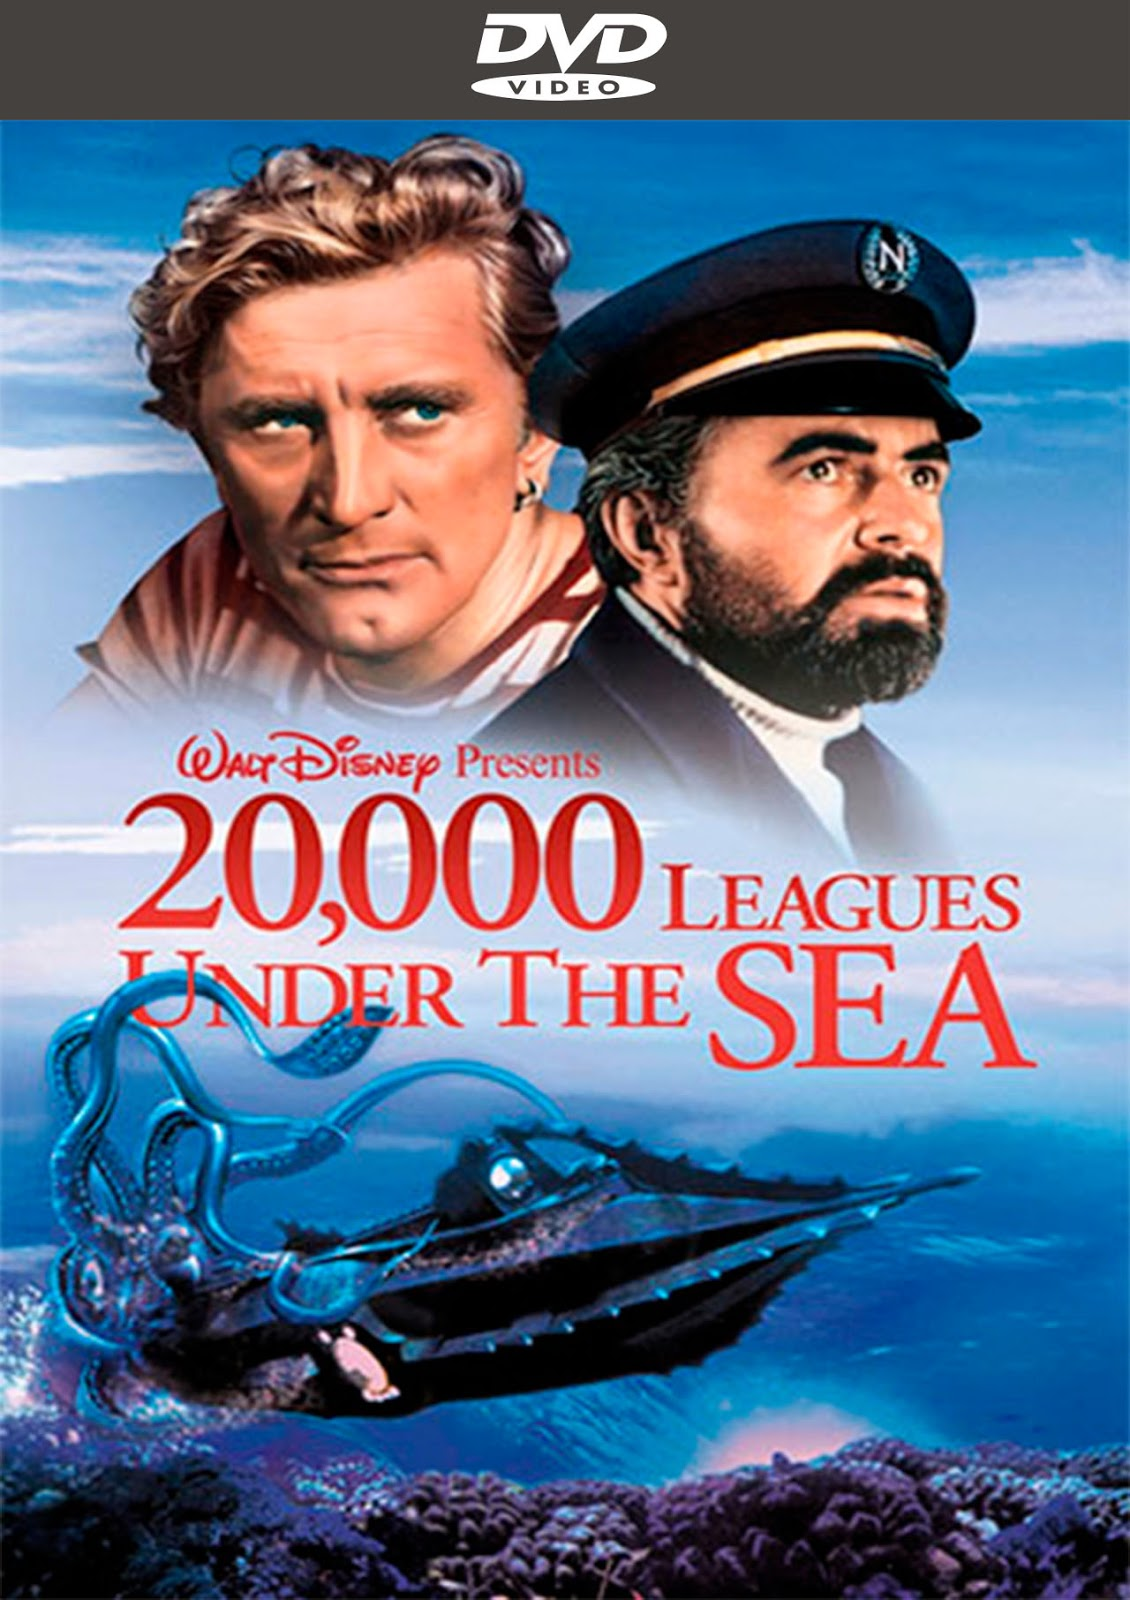 20,000 Leagues Under The Sea [1954] [Latino] [DvD Full]